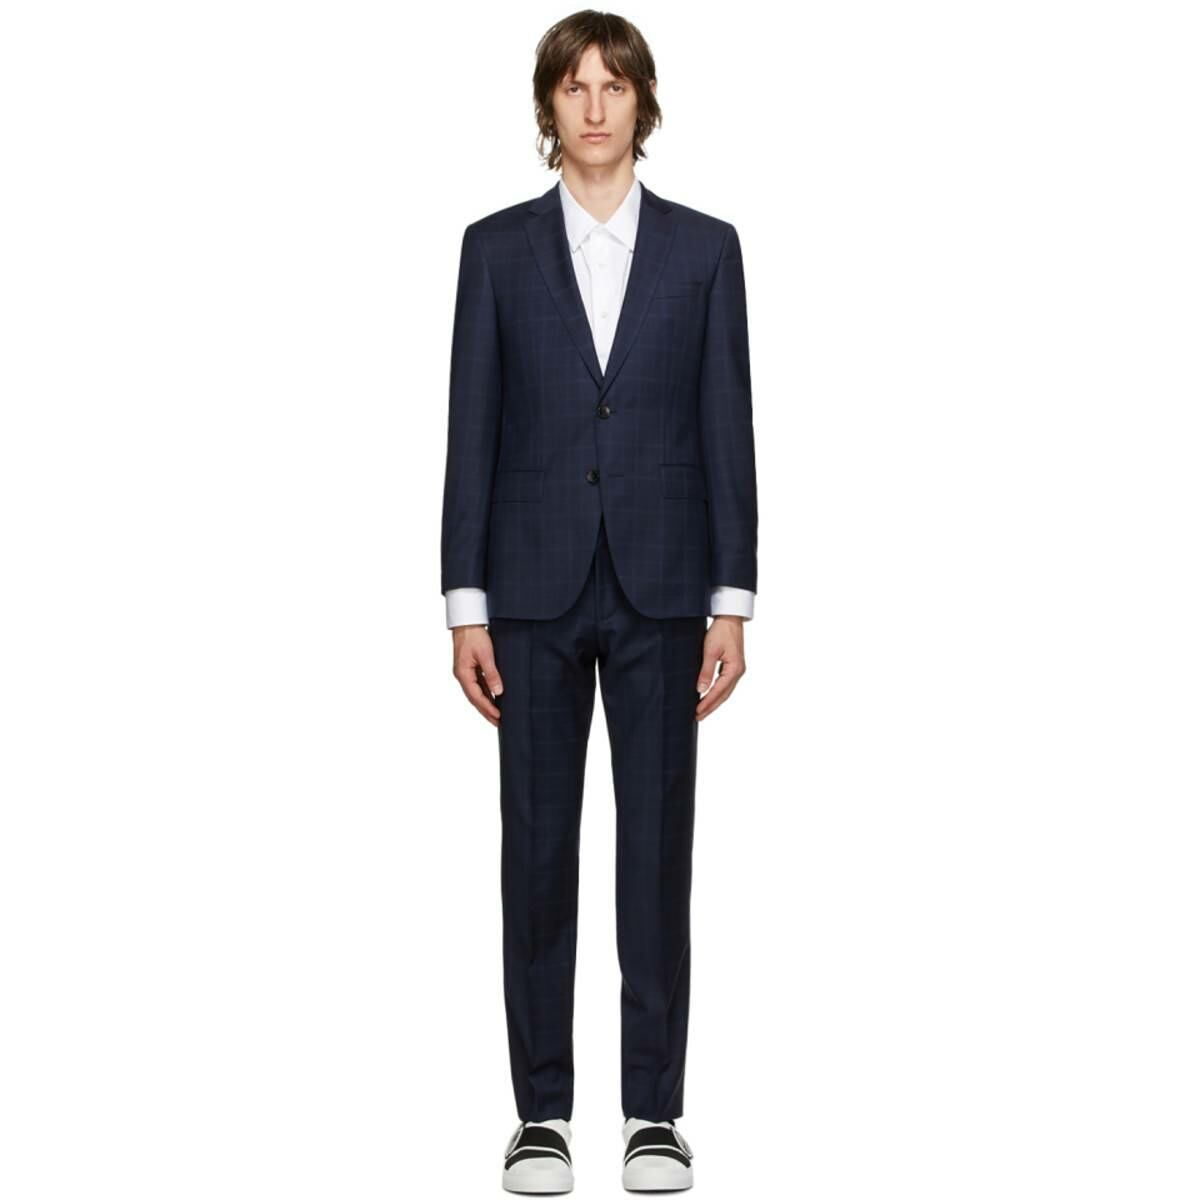 Boss Navy Checked Huge6 Genius5 Suit Ssense USA MEN Men FASHION Mens SUITS